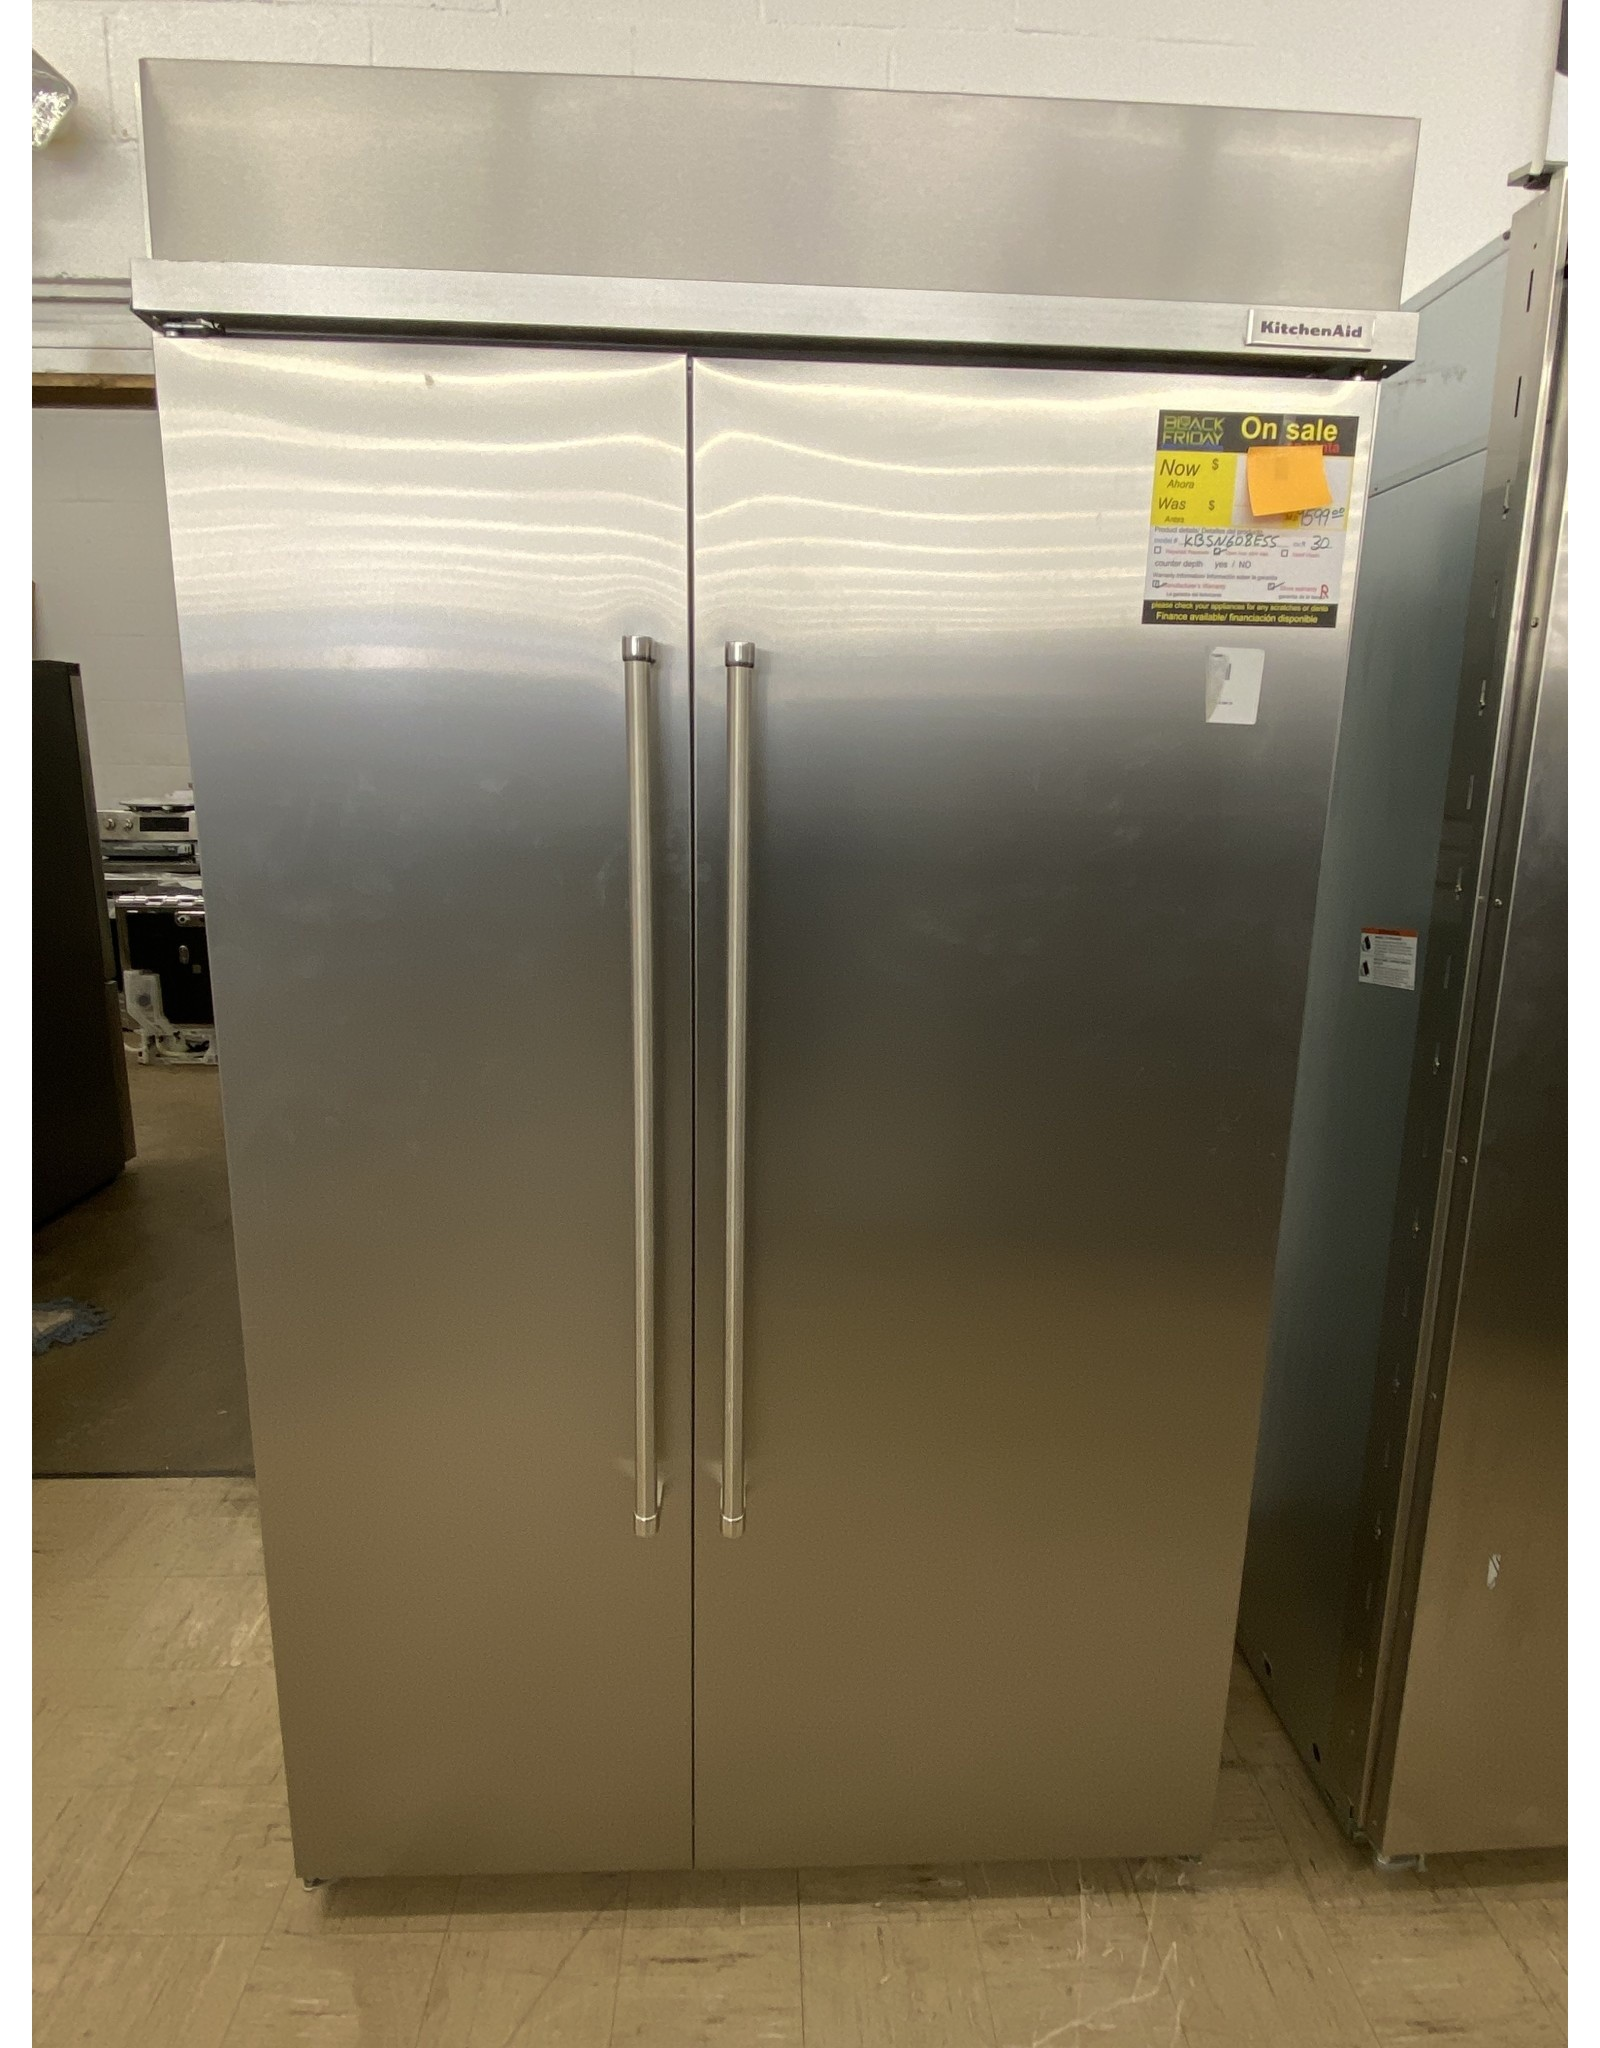 """KBSN608ESS KAD No Frost Side - Built-in Refr Frez - 48"""" SXS, STAINLESS STEEL, NON DISPENSE"""